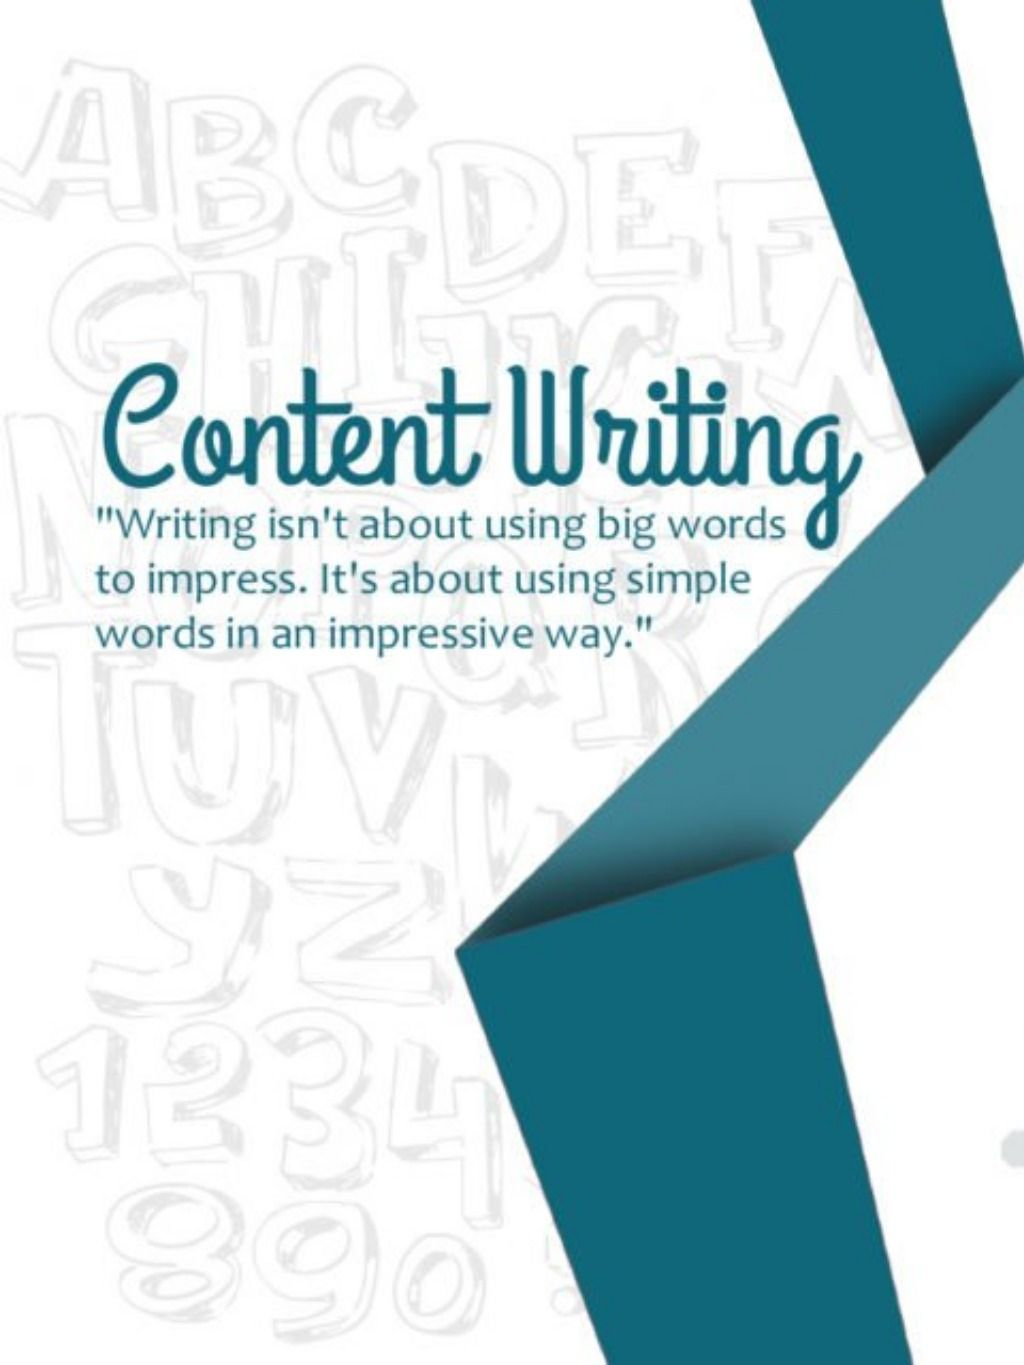 dhimaninfotech contact for best quality #content #writing #s